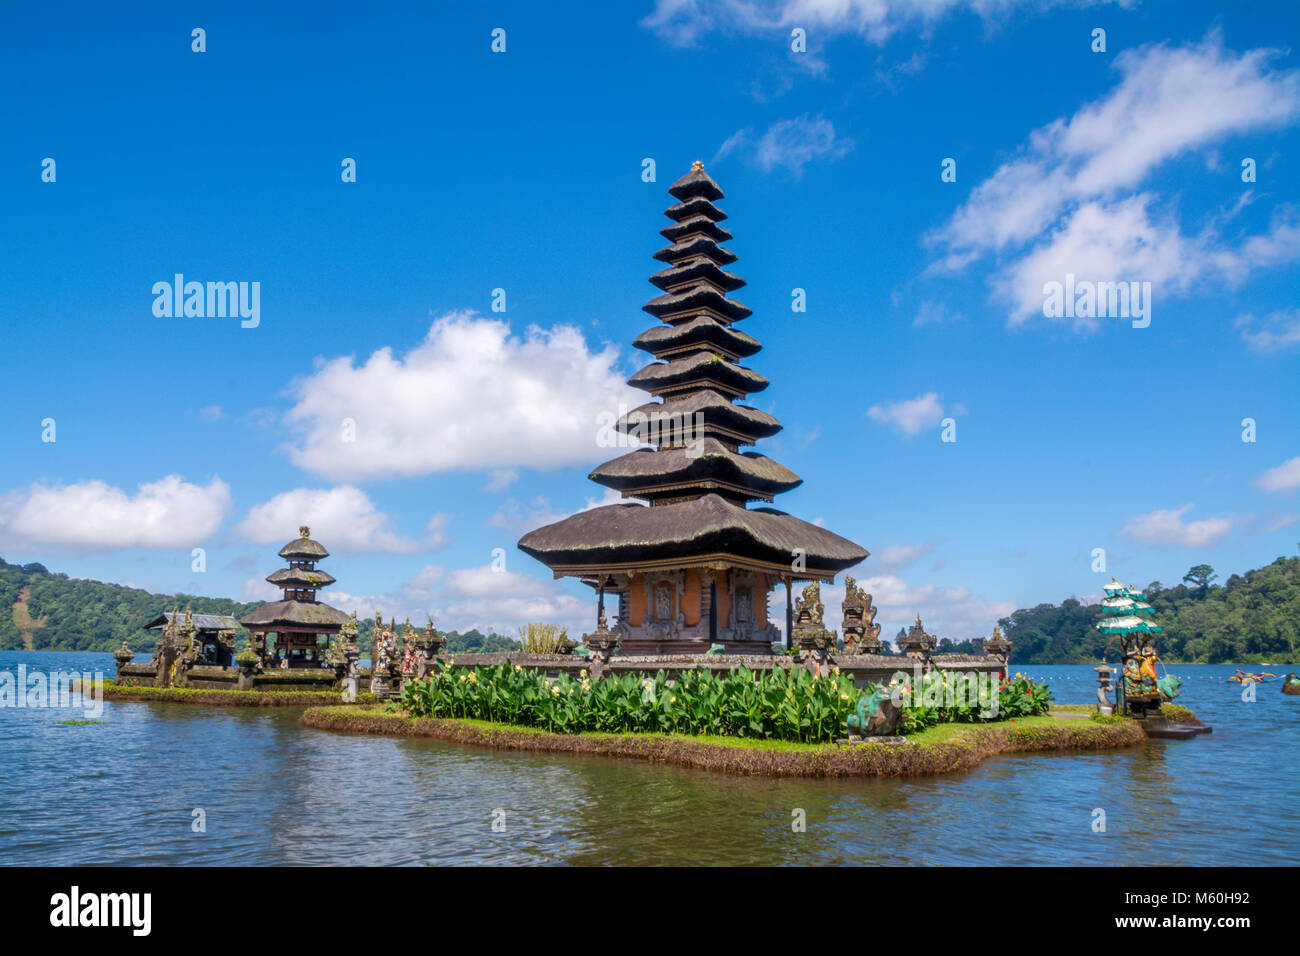 Pura Ulun Danu Bratan at Bali, Indonesia - Asia, Bali, Indonesia, Lake Bratan Area, Pura Ulu Danau Temple Stock Photo